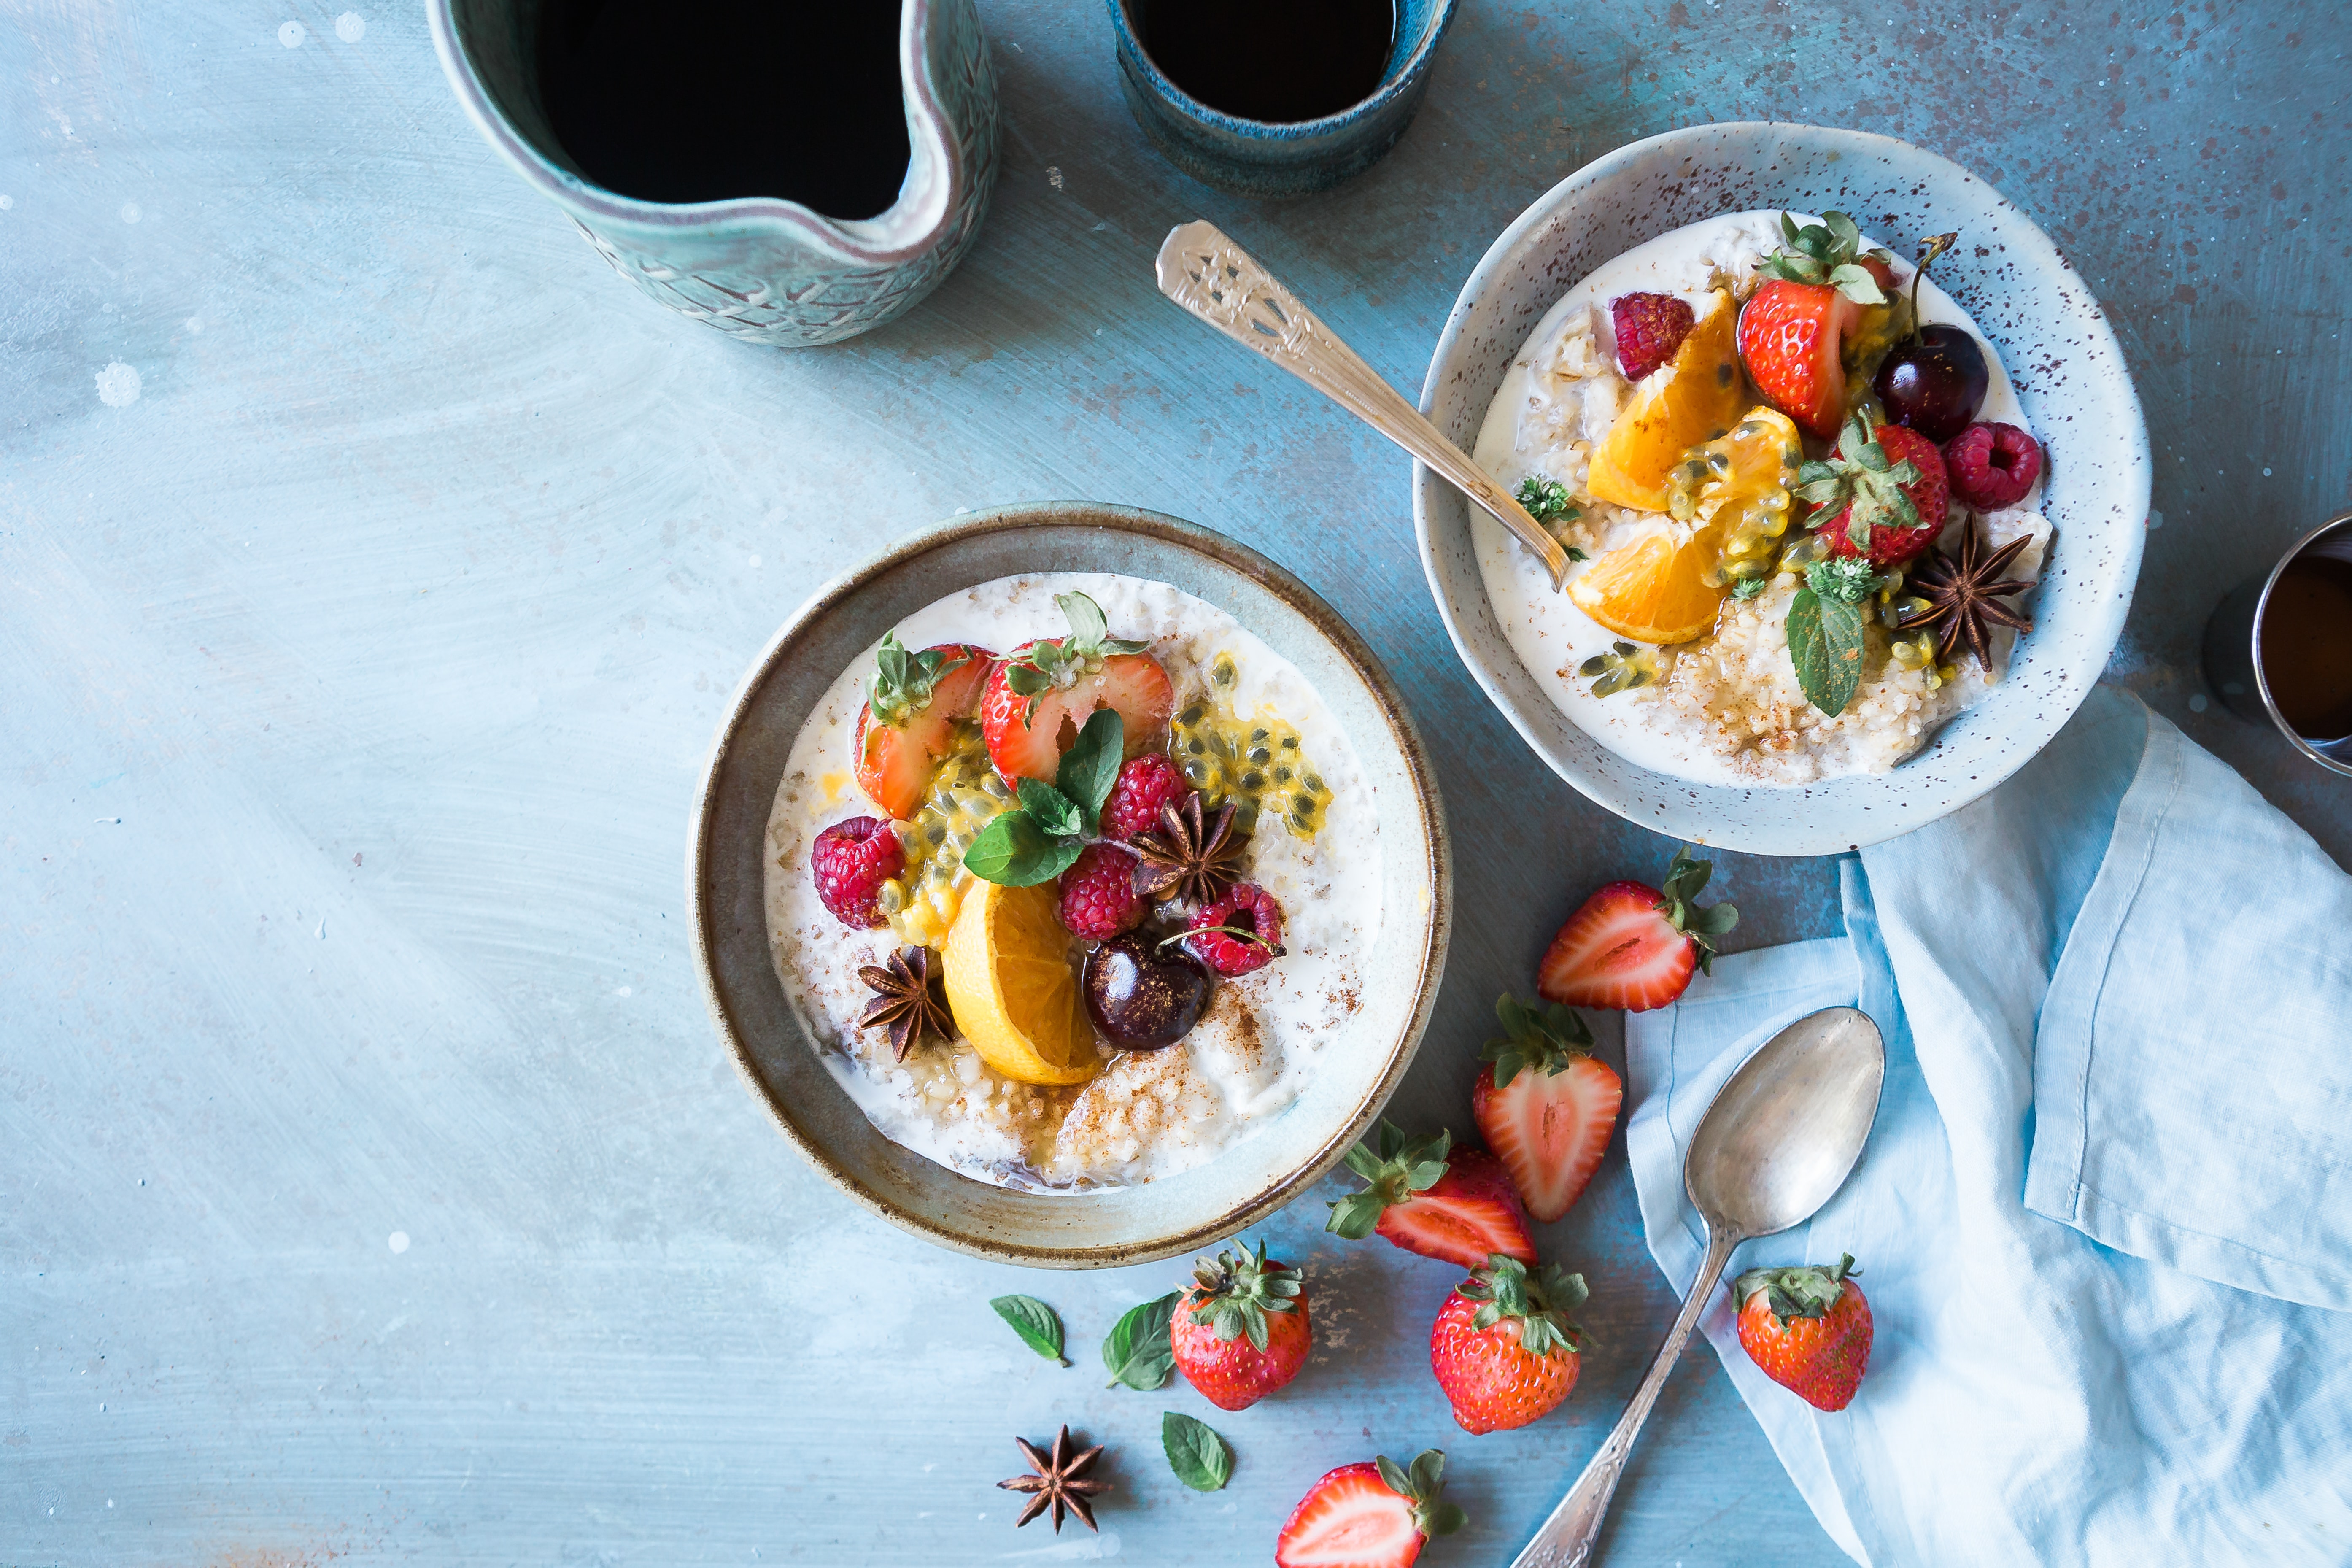 Flat lay of healthy breakfast with bowls of fruit and oatmeal